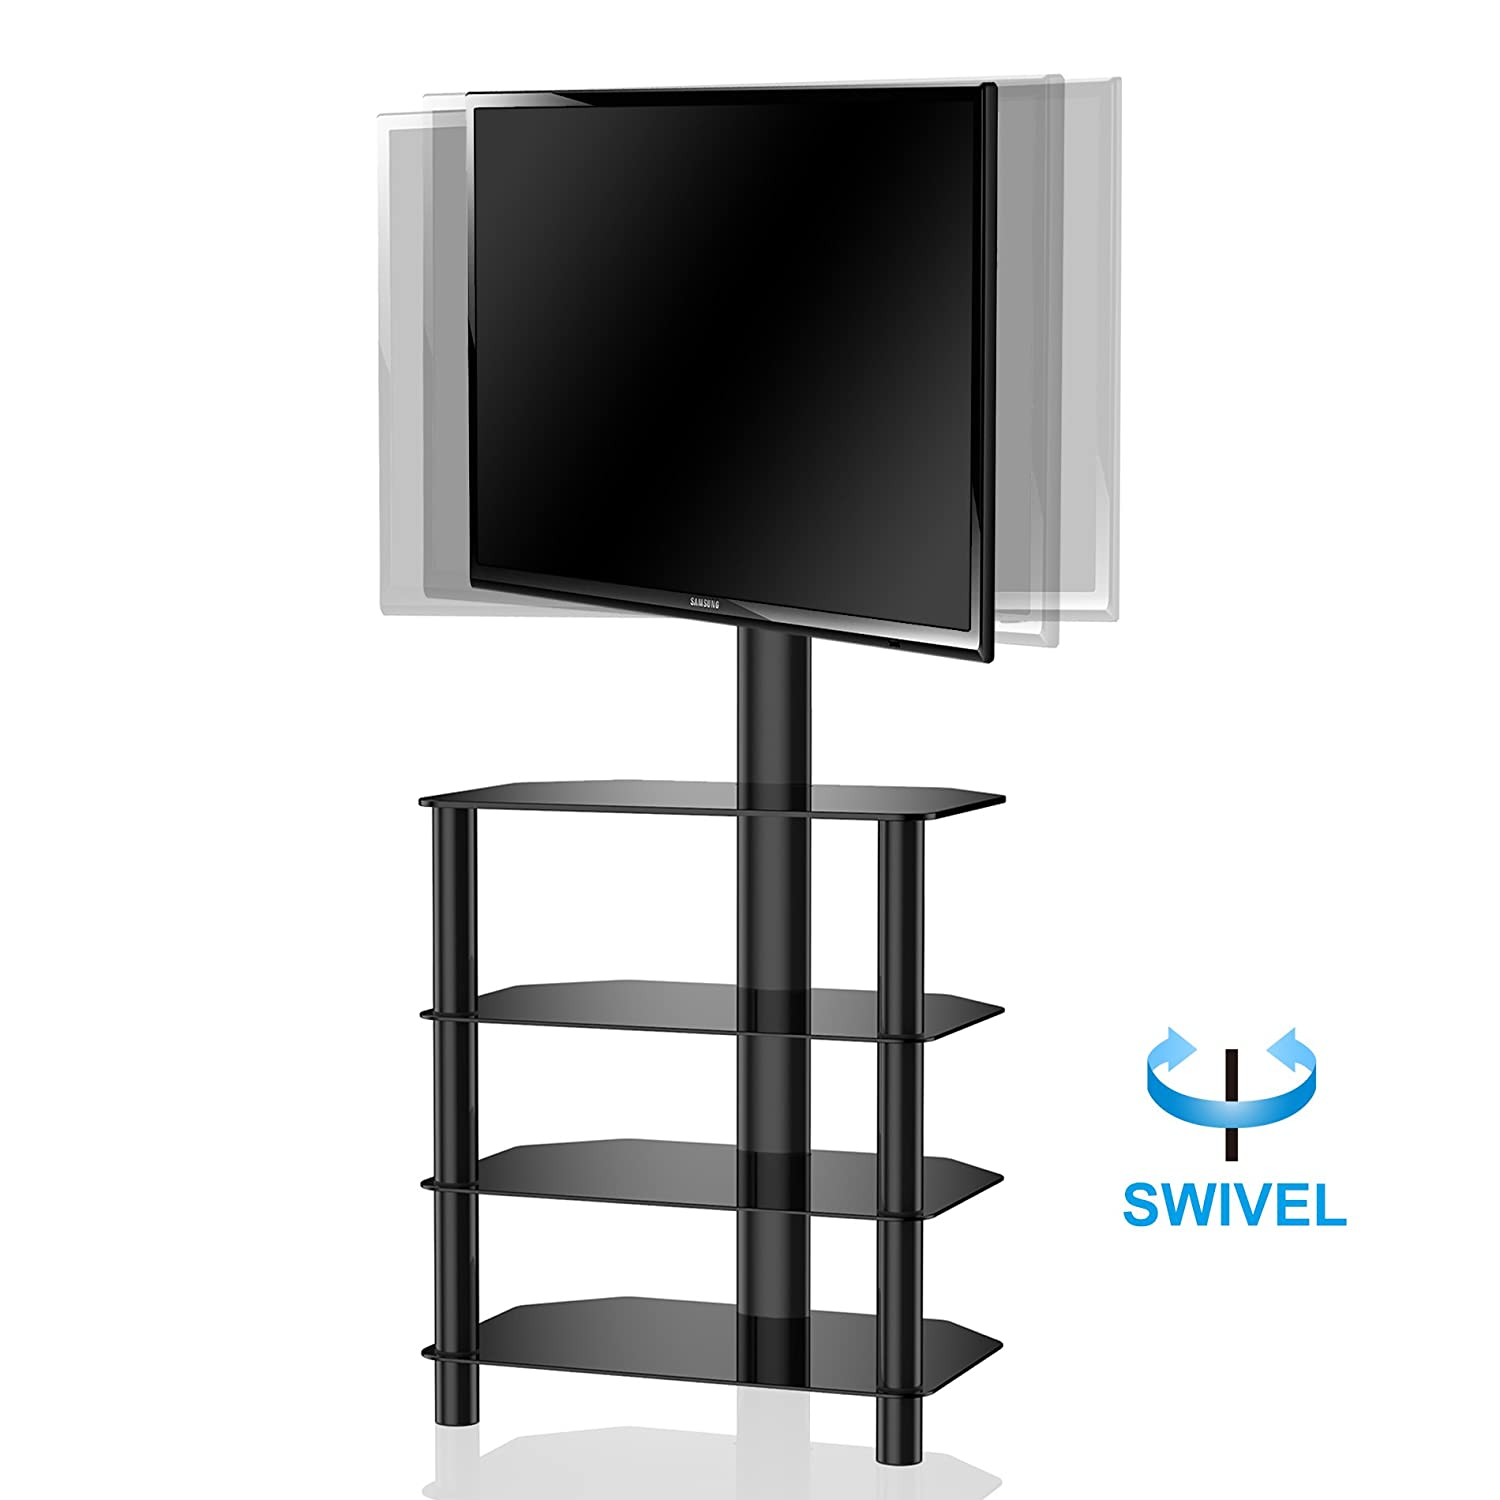 FITUEYES Corner TV Stand with Swivel Mount for 32-50 Flat Curved Screen TV Entertainment Center Media Console TW406001MB